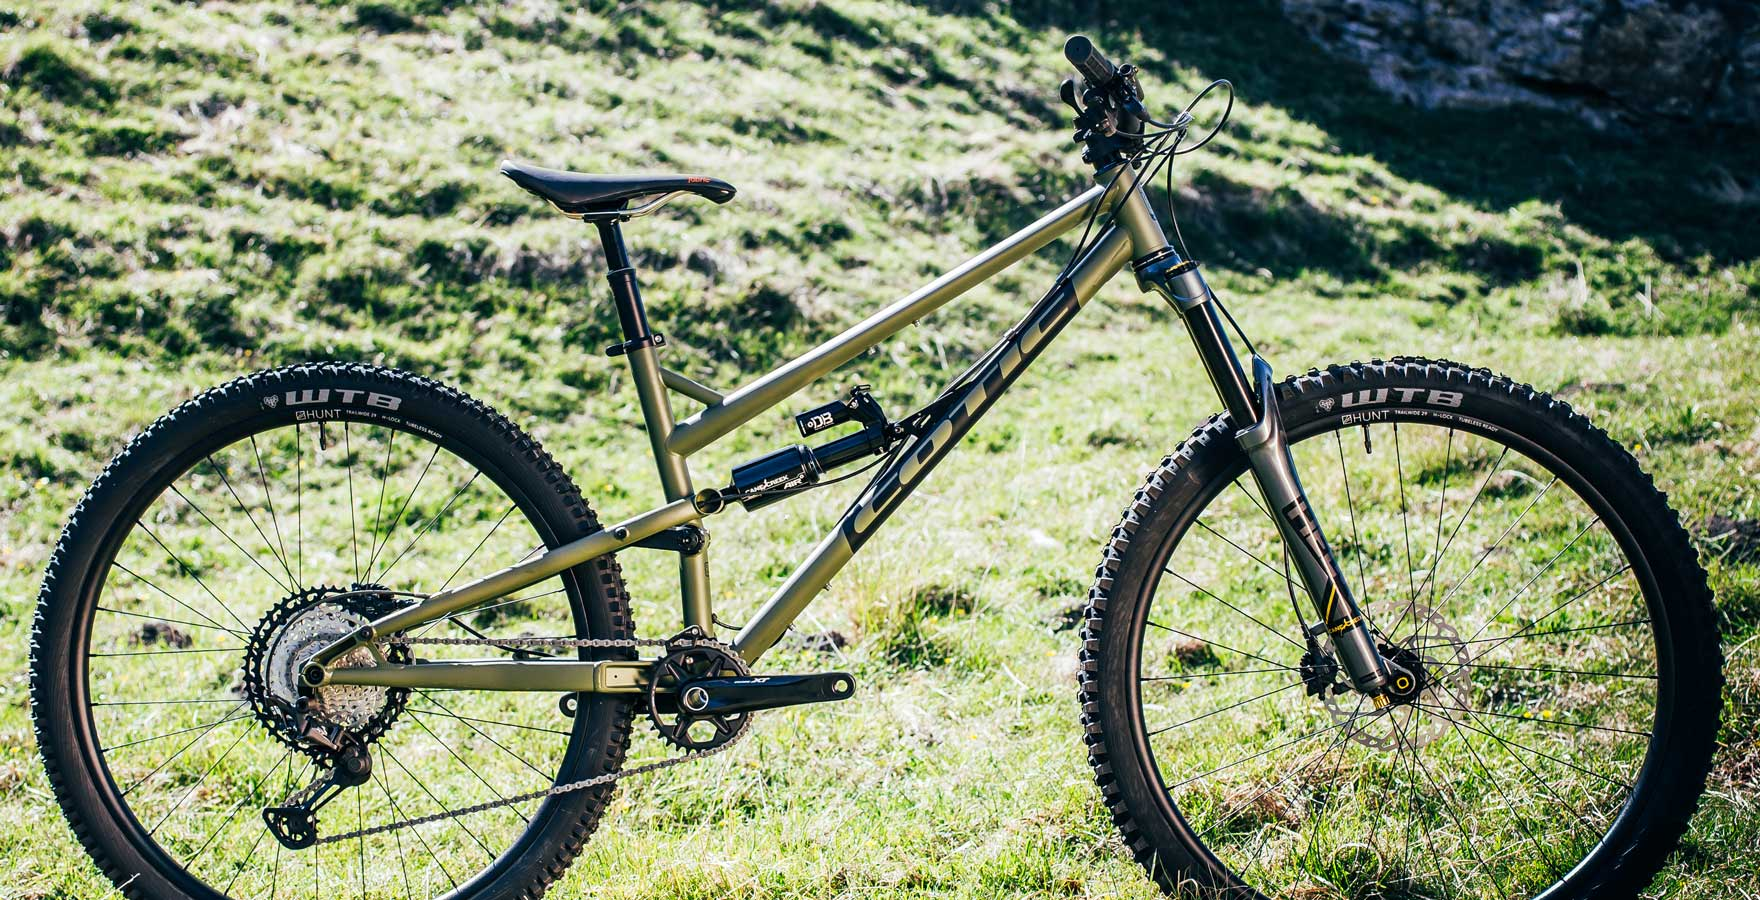 new cotic RocketMAX, cotic bikes, love it or your money back, money back guarantee, steel is real, steel full suspension, enduro full suspension, mountain bike, reynolds 853, fastest mountain bike, 29er enduro bike